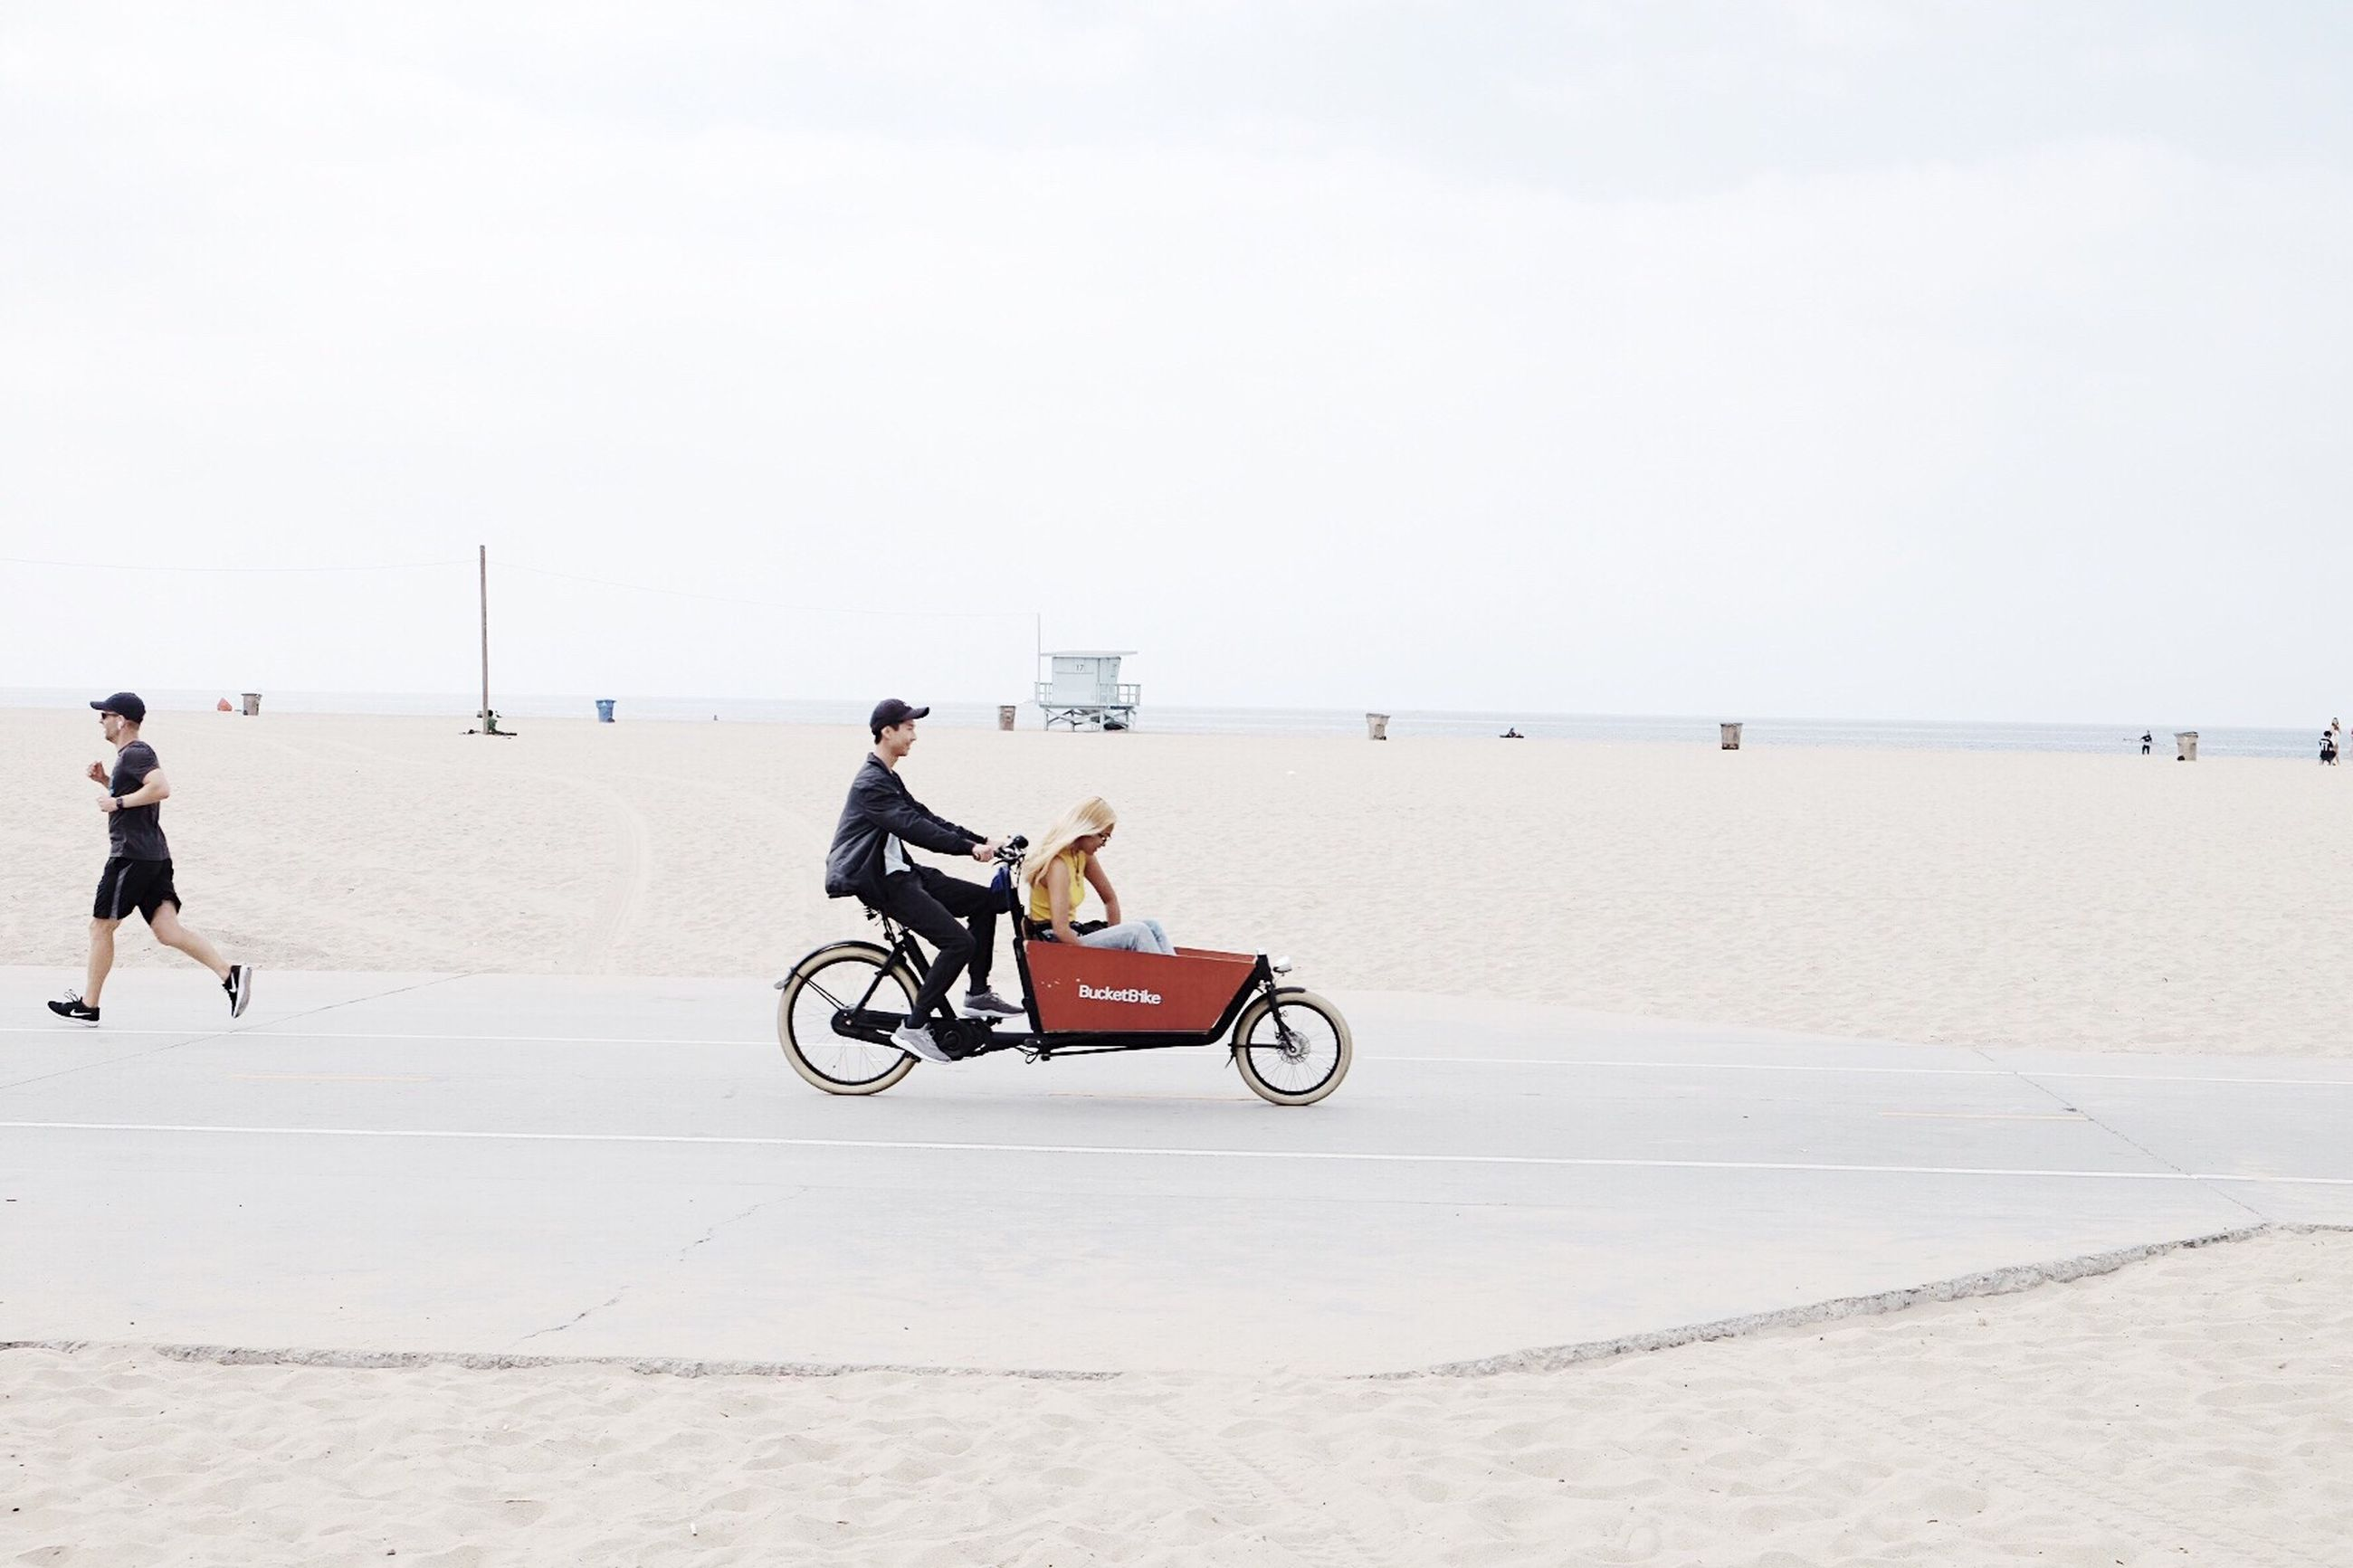 transportation, full length, day, copy space, outdoors, sea, beach, riding, clear sky, sky, sand, land vehicle, real people, men, sitting, horizon over water, nature, water, one person, young adult, people